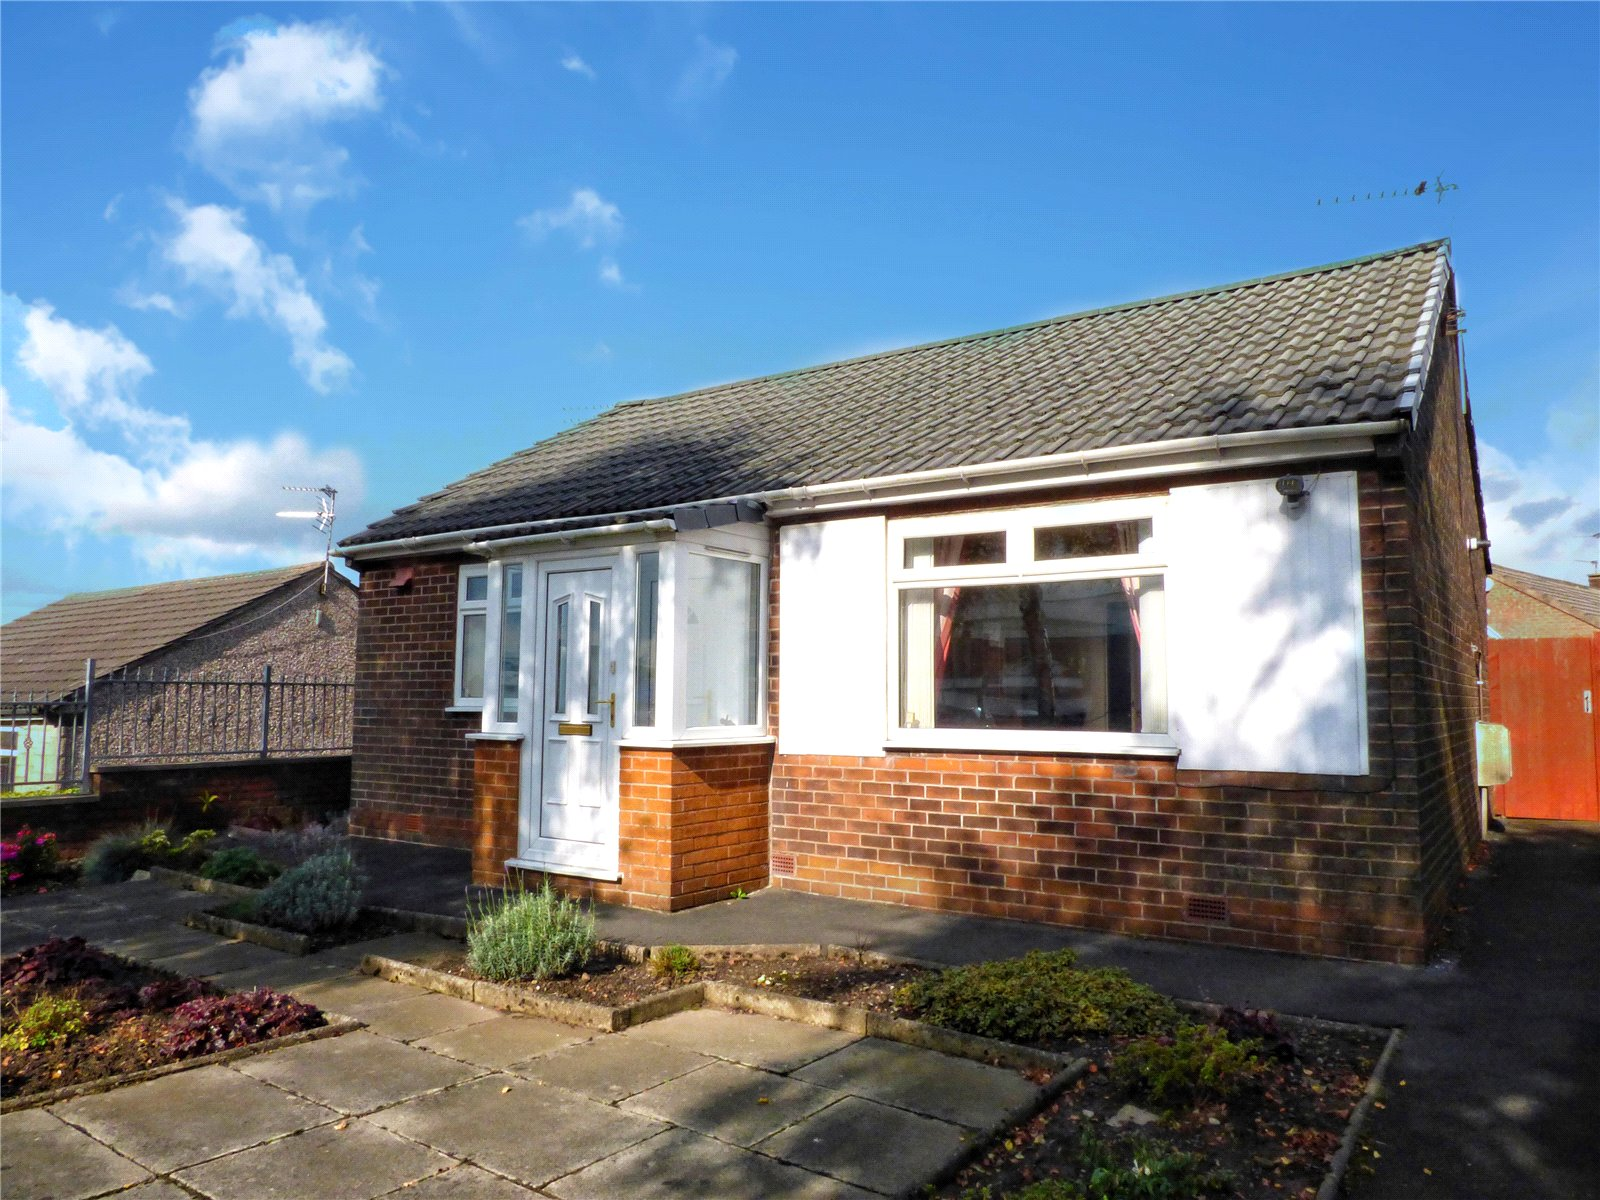 2 Bedrooms Detached Bungalow for sale in Edinburgh Way, Rochdale, Greater Manchester, OL11